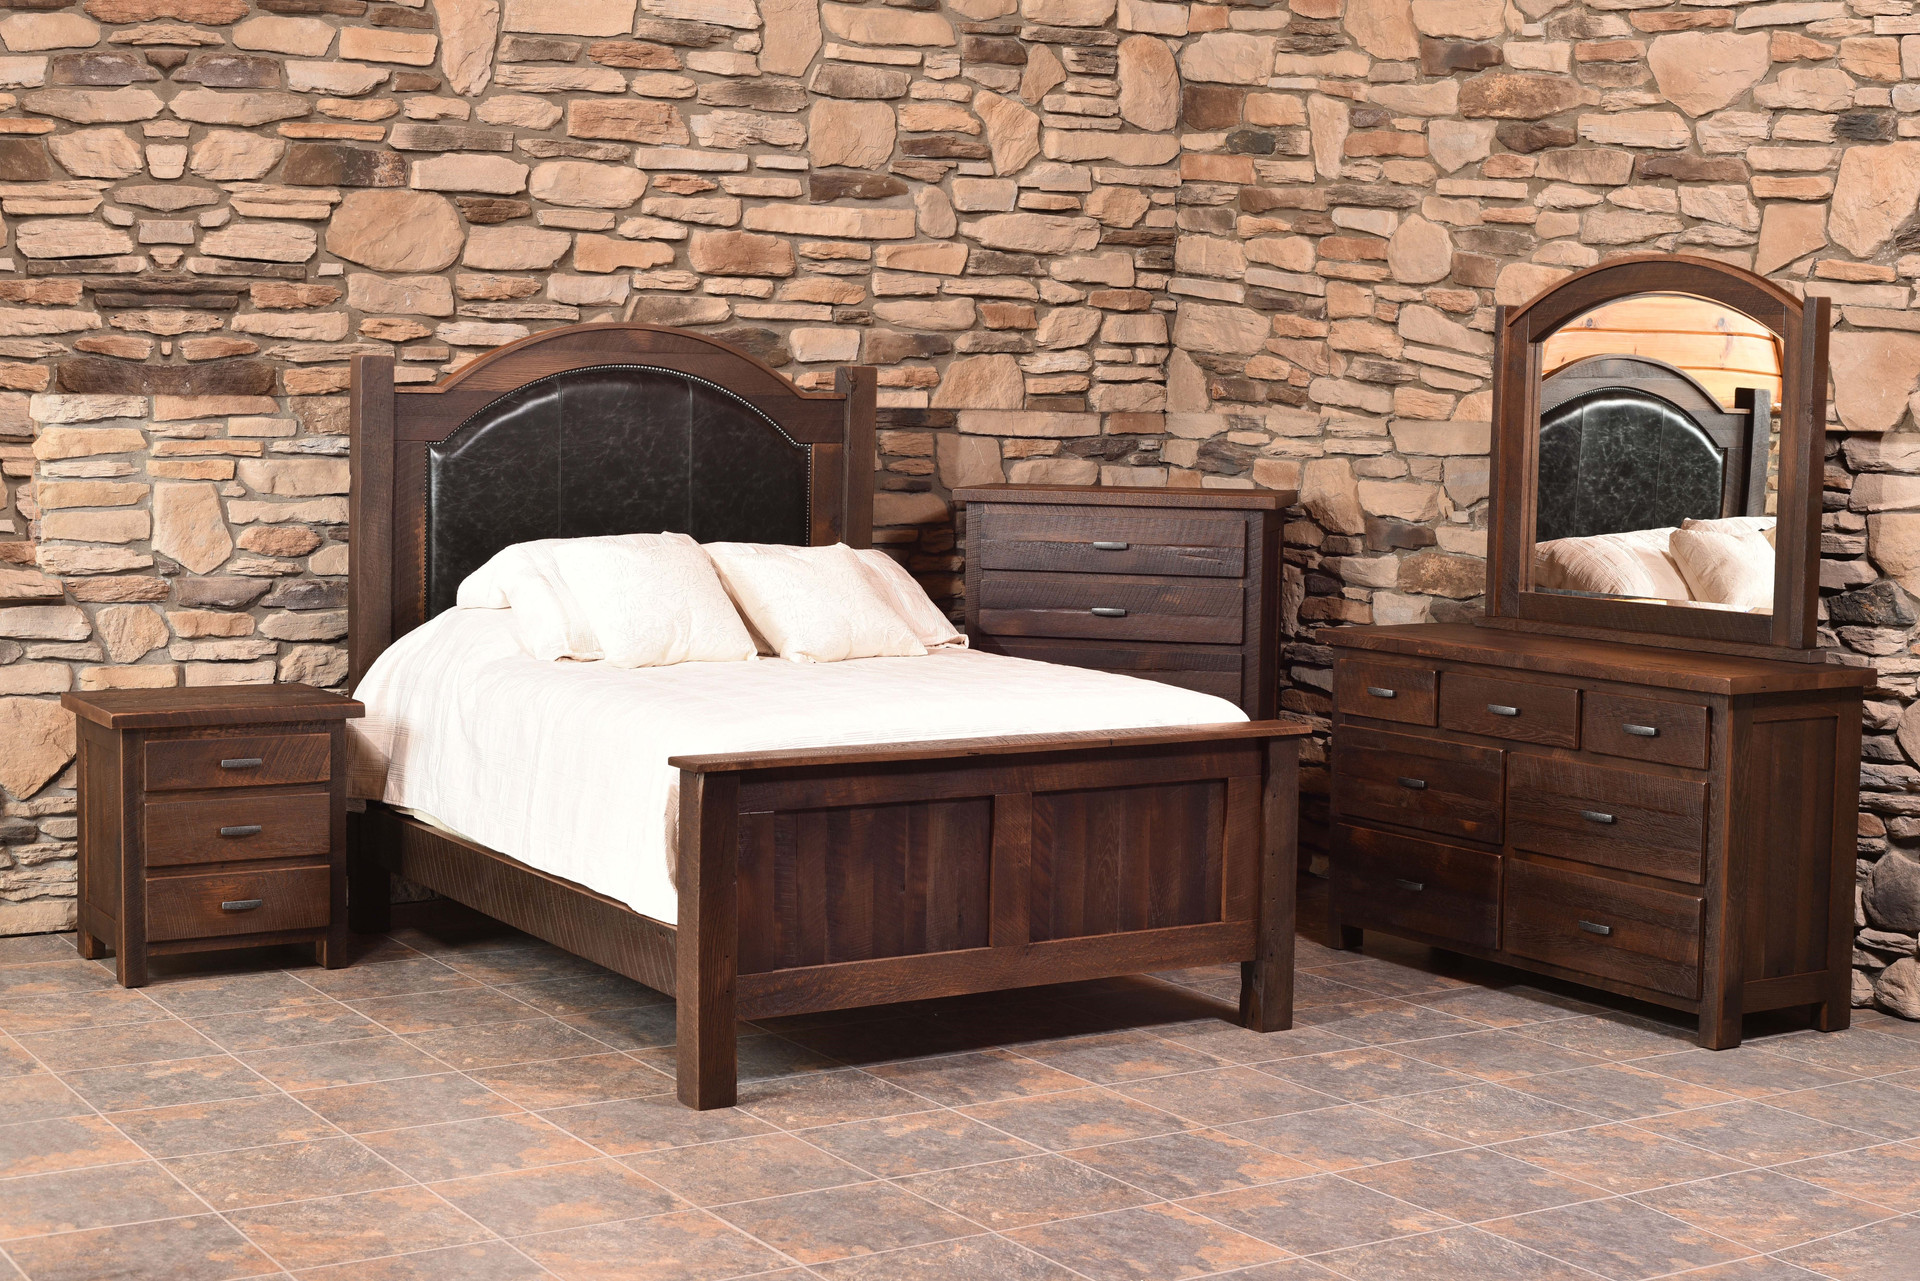 Quincy - Barnwood Collection